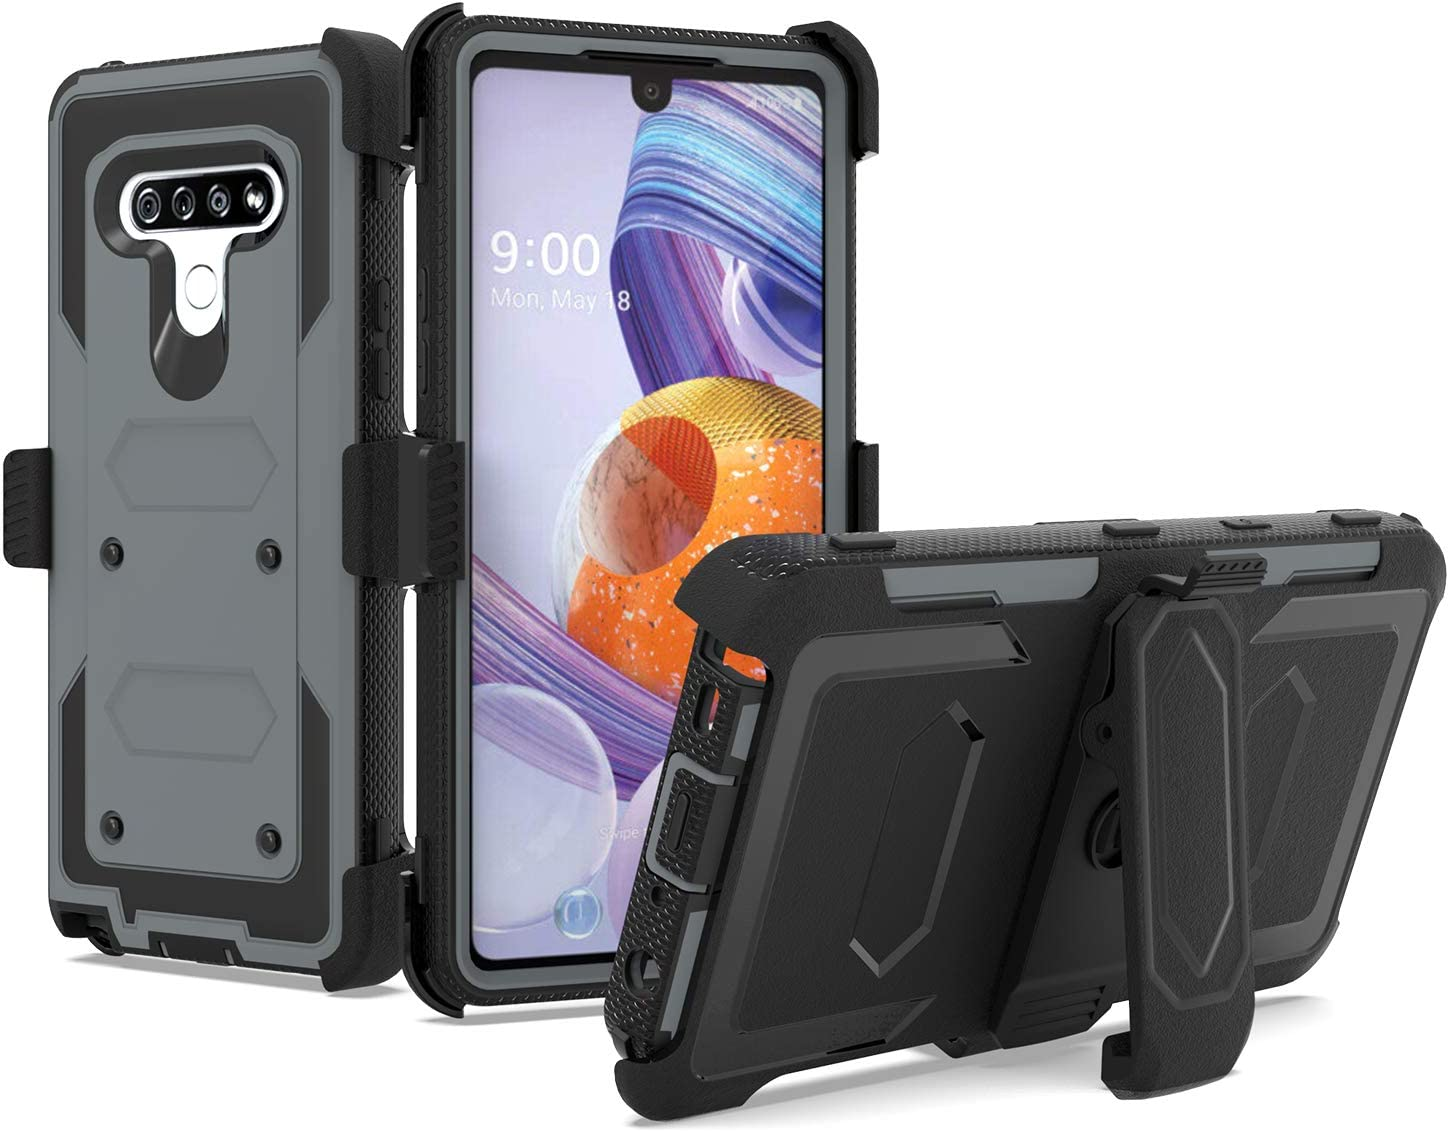 UNC Pro 3 in 1 Belt Clip Holster Cell Phone Case for LG Stylo 6, Heavy Duty Shell Hybrid Shockproof Bumper Case with Kickstand, Grey/Black